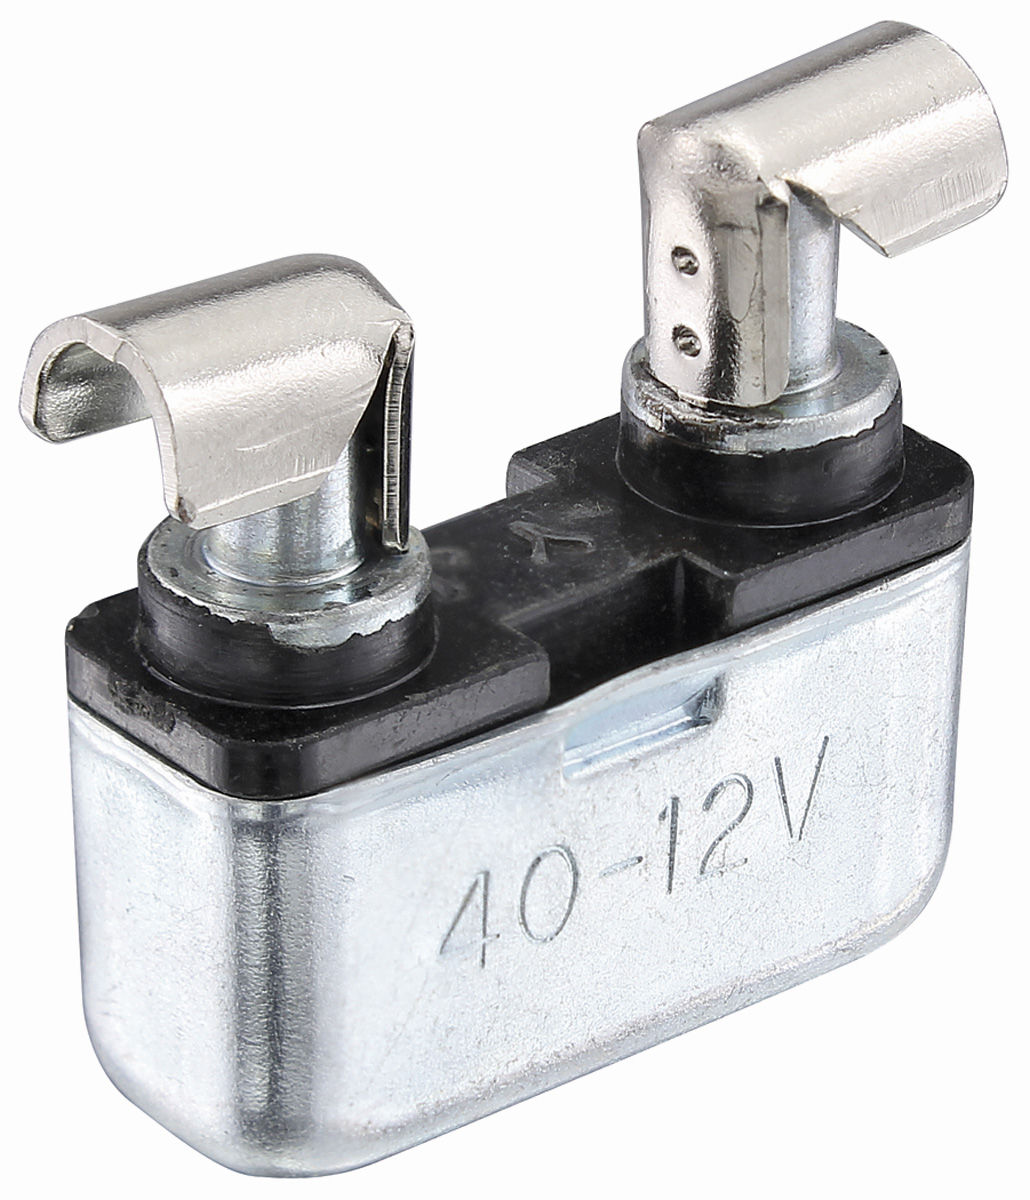 hight resolution of power accessory circuit breaker 40 amp fuse block mounted tap to enlarge